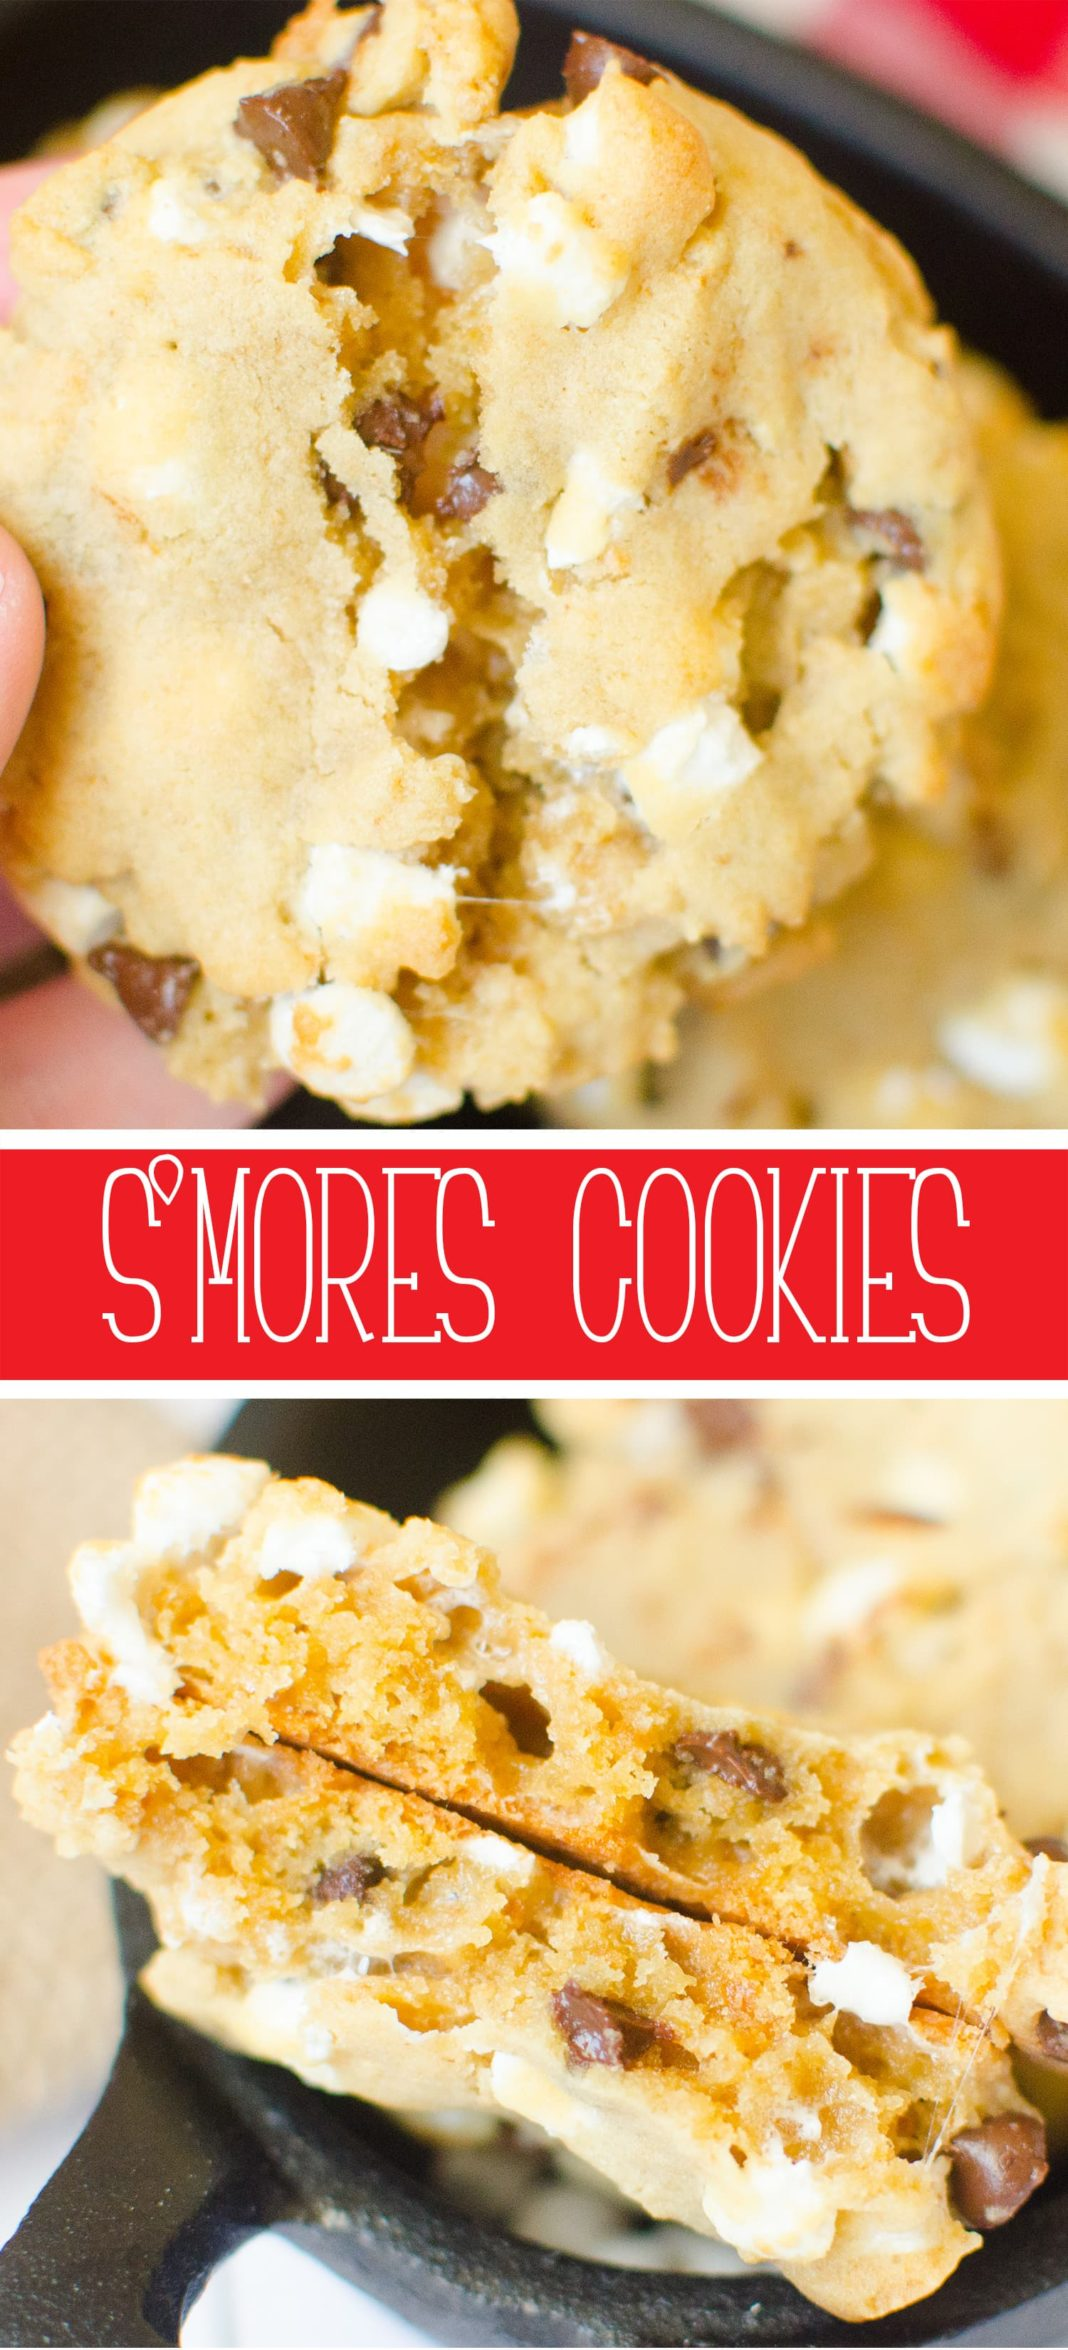 S'mores Cookies will take you right to the campfire! Graham Cracker crumbs, marshmallow bits, chocolate chips with just enough dough to hold it all together. You'll have S'mores right from your oven!